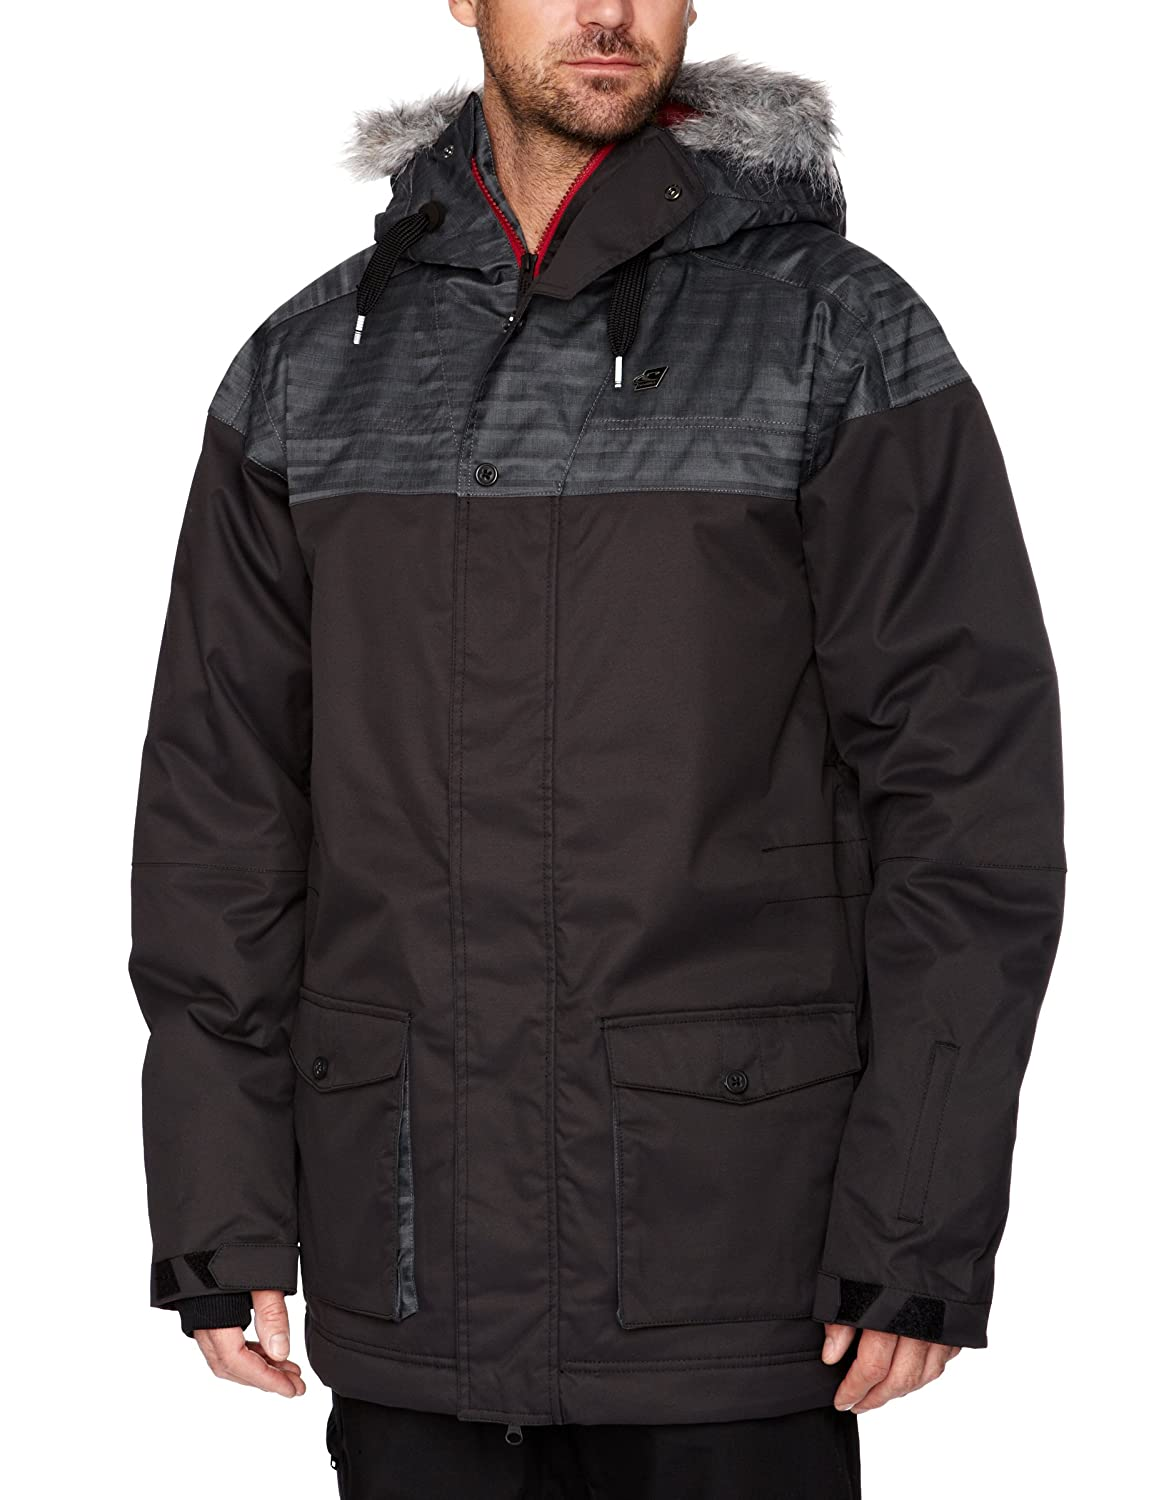 ONEILL FREEDOM ELEMENTS Jacke 2013 black out